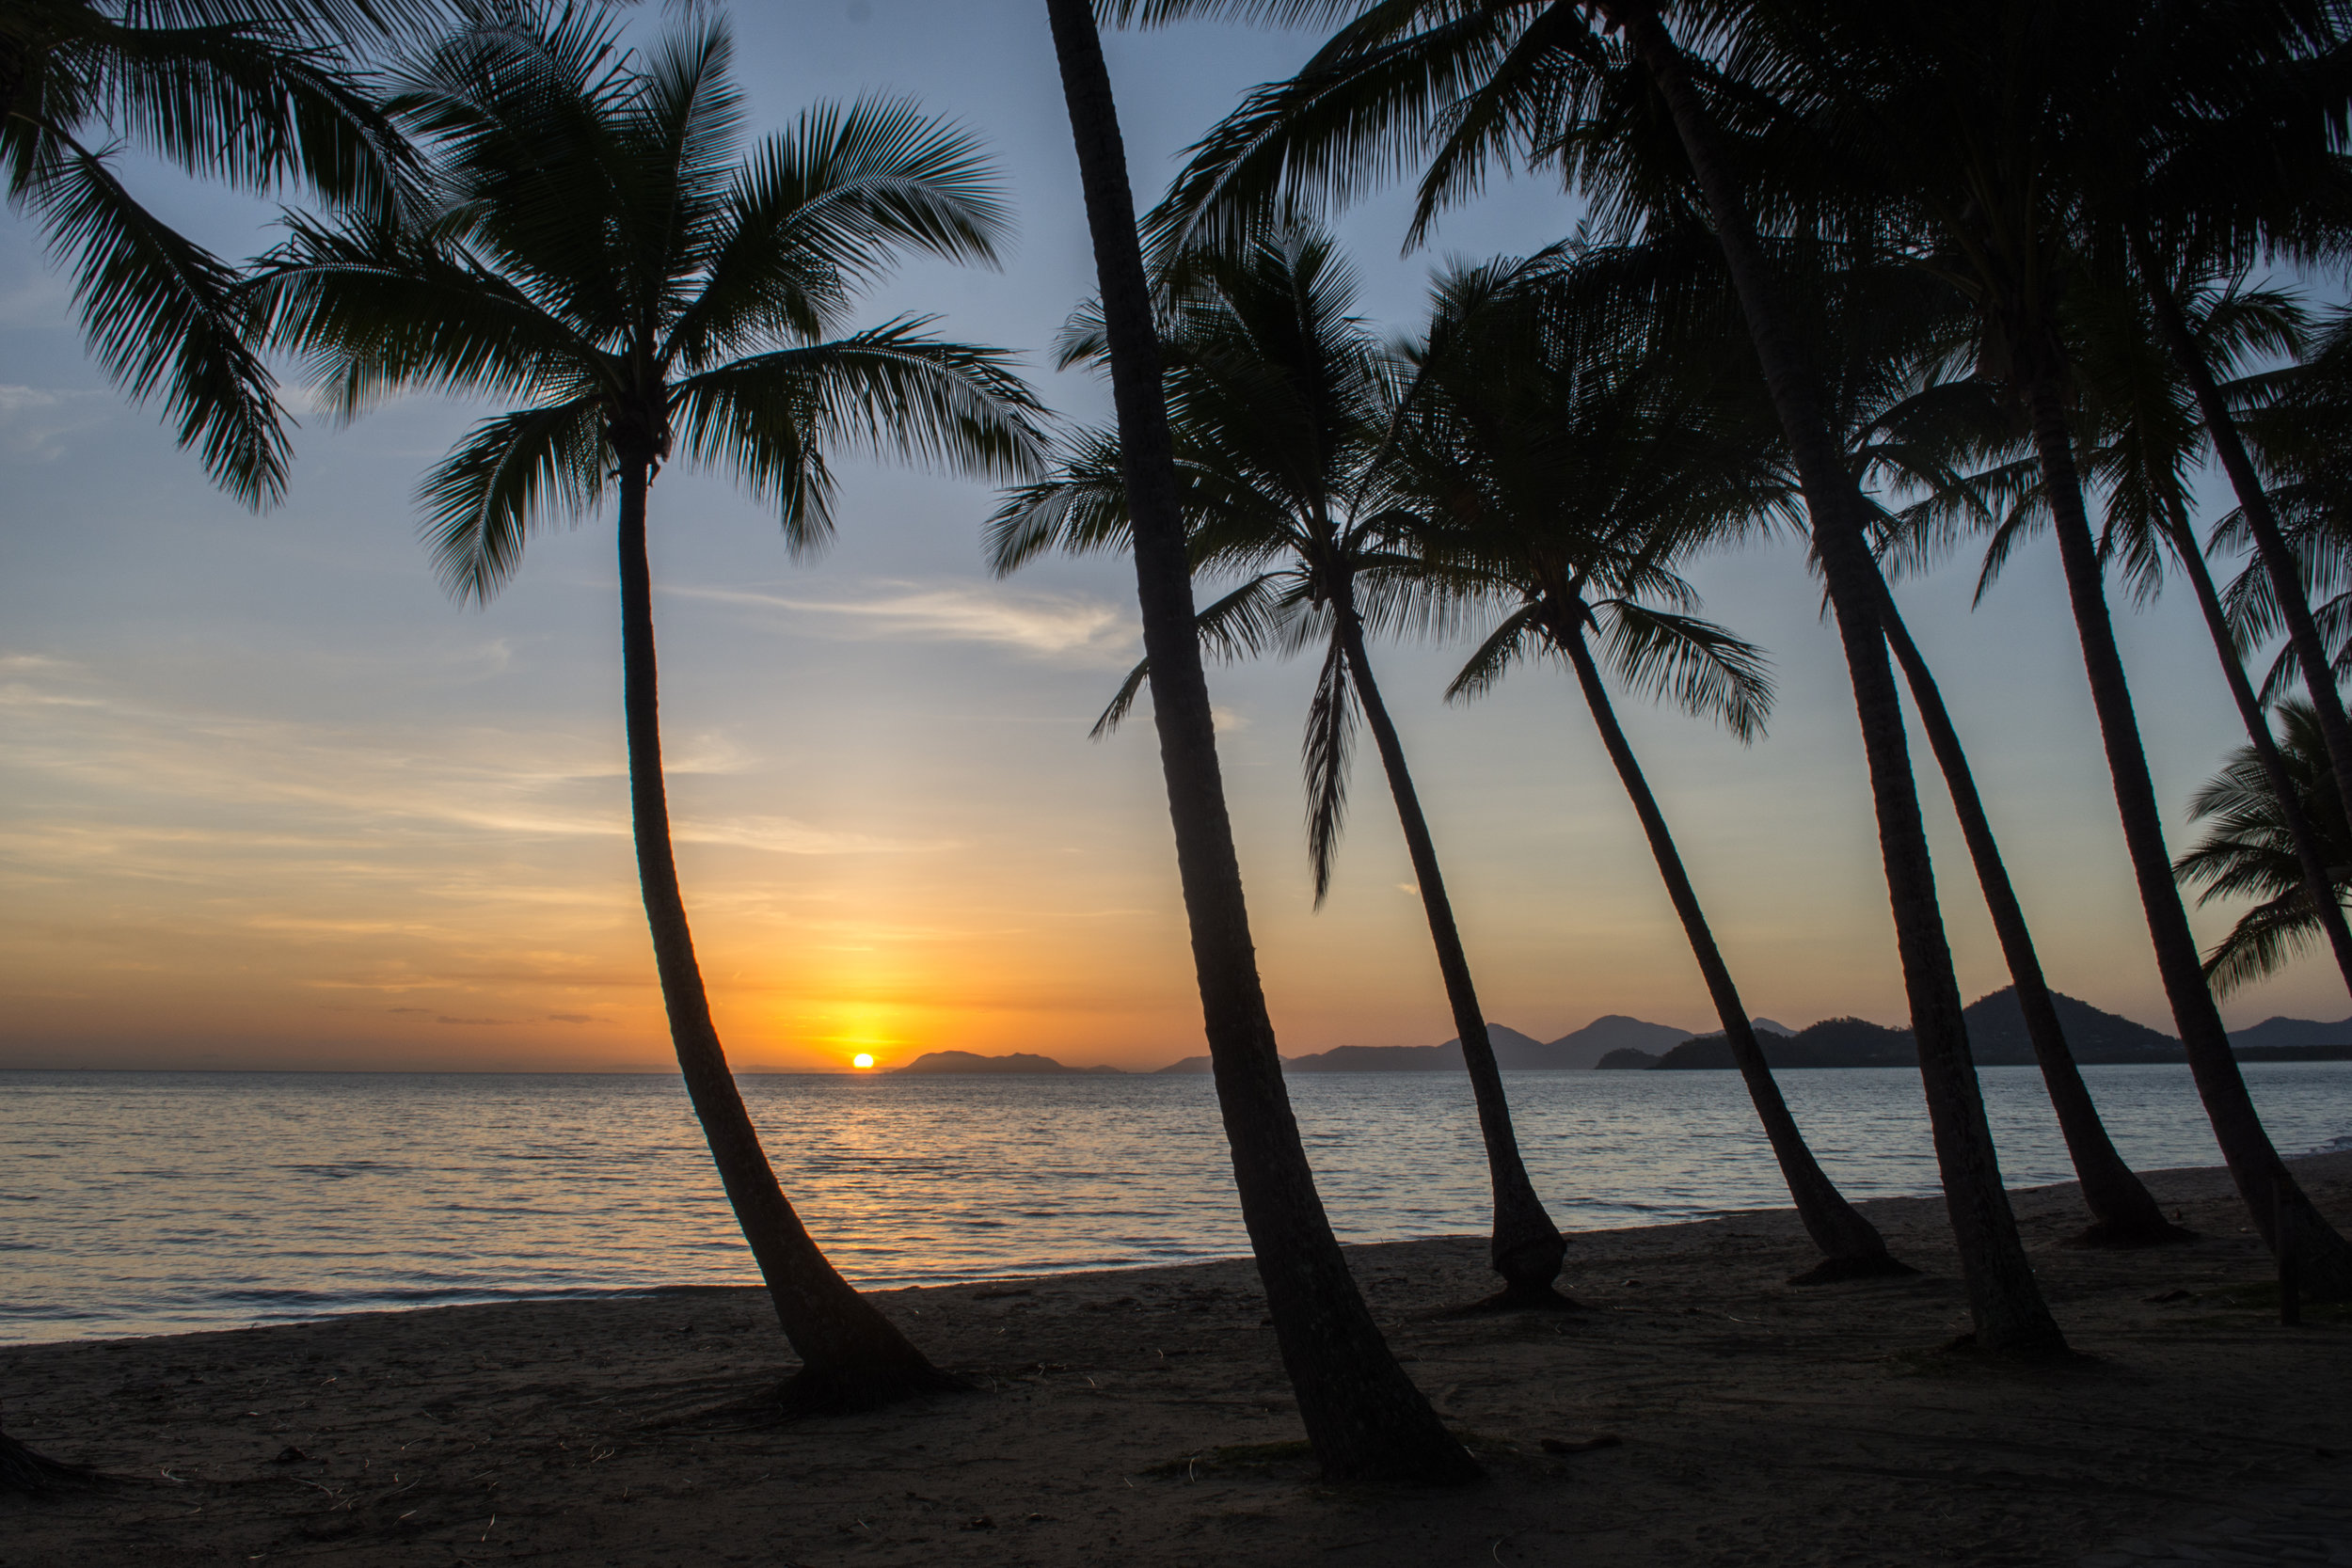 Sunrise over Palm Cove Beach